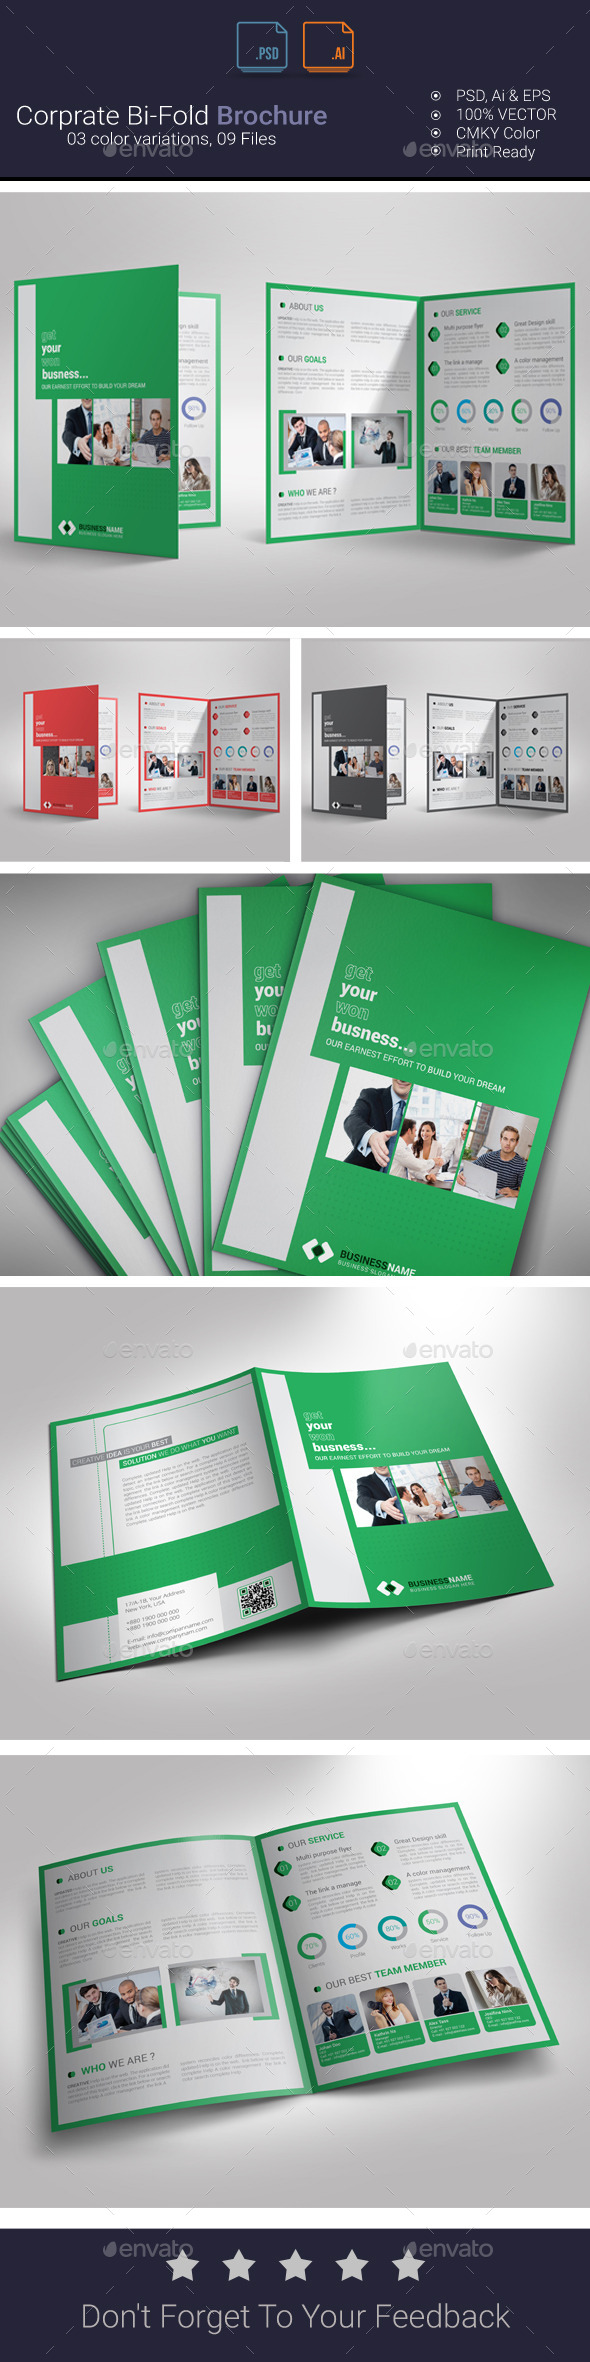 GraphicRiver Bi-Fold Brochure 9788825